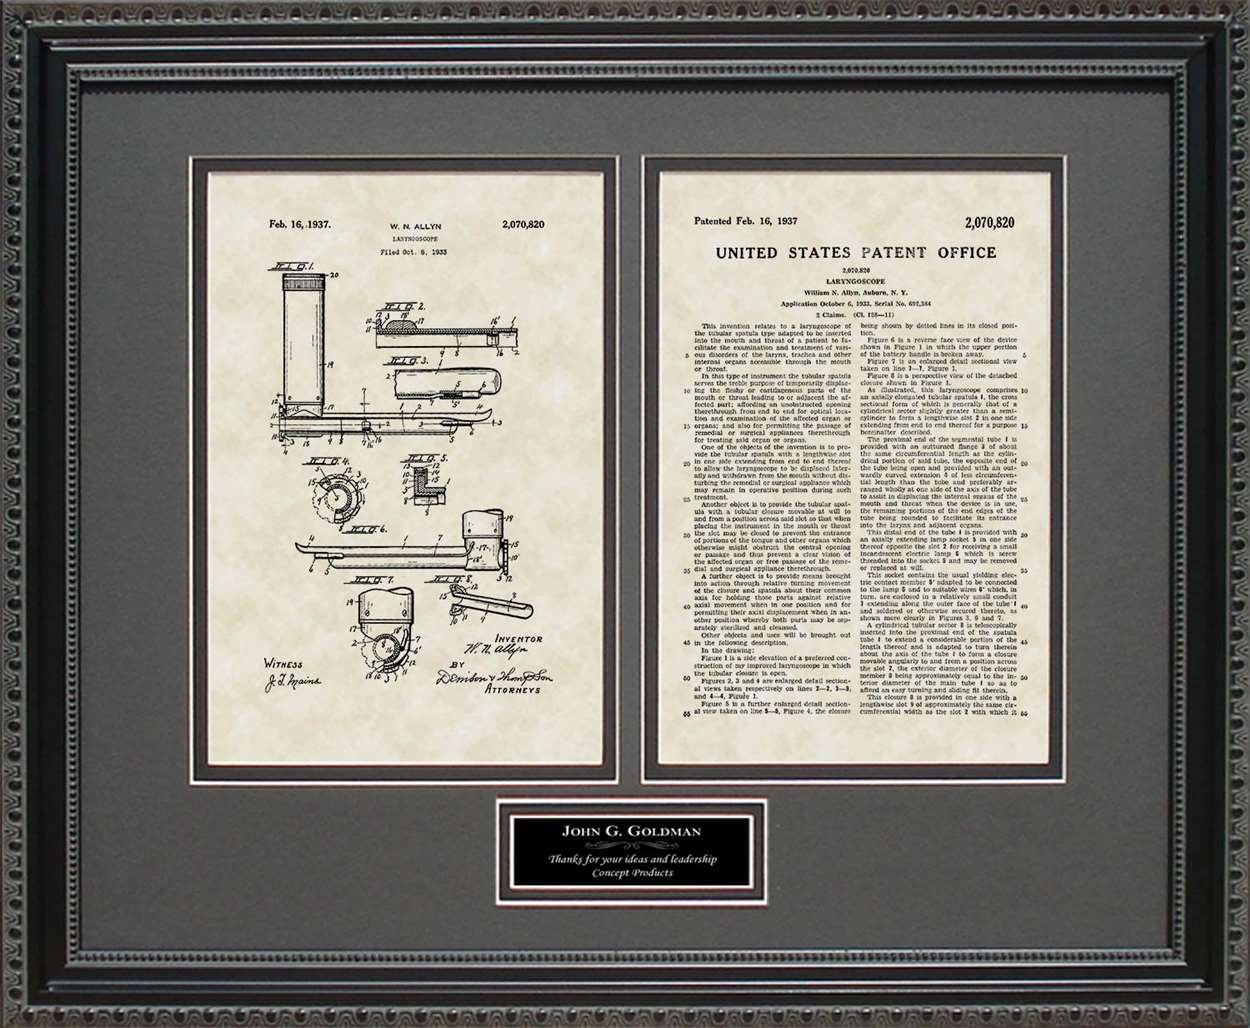 Personalized Laryngoscope Patent, Art & Copy, Allyn, 1937